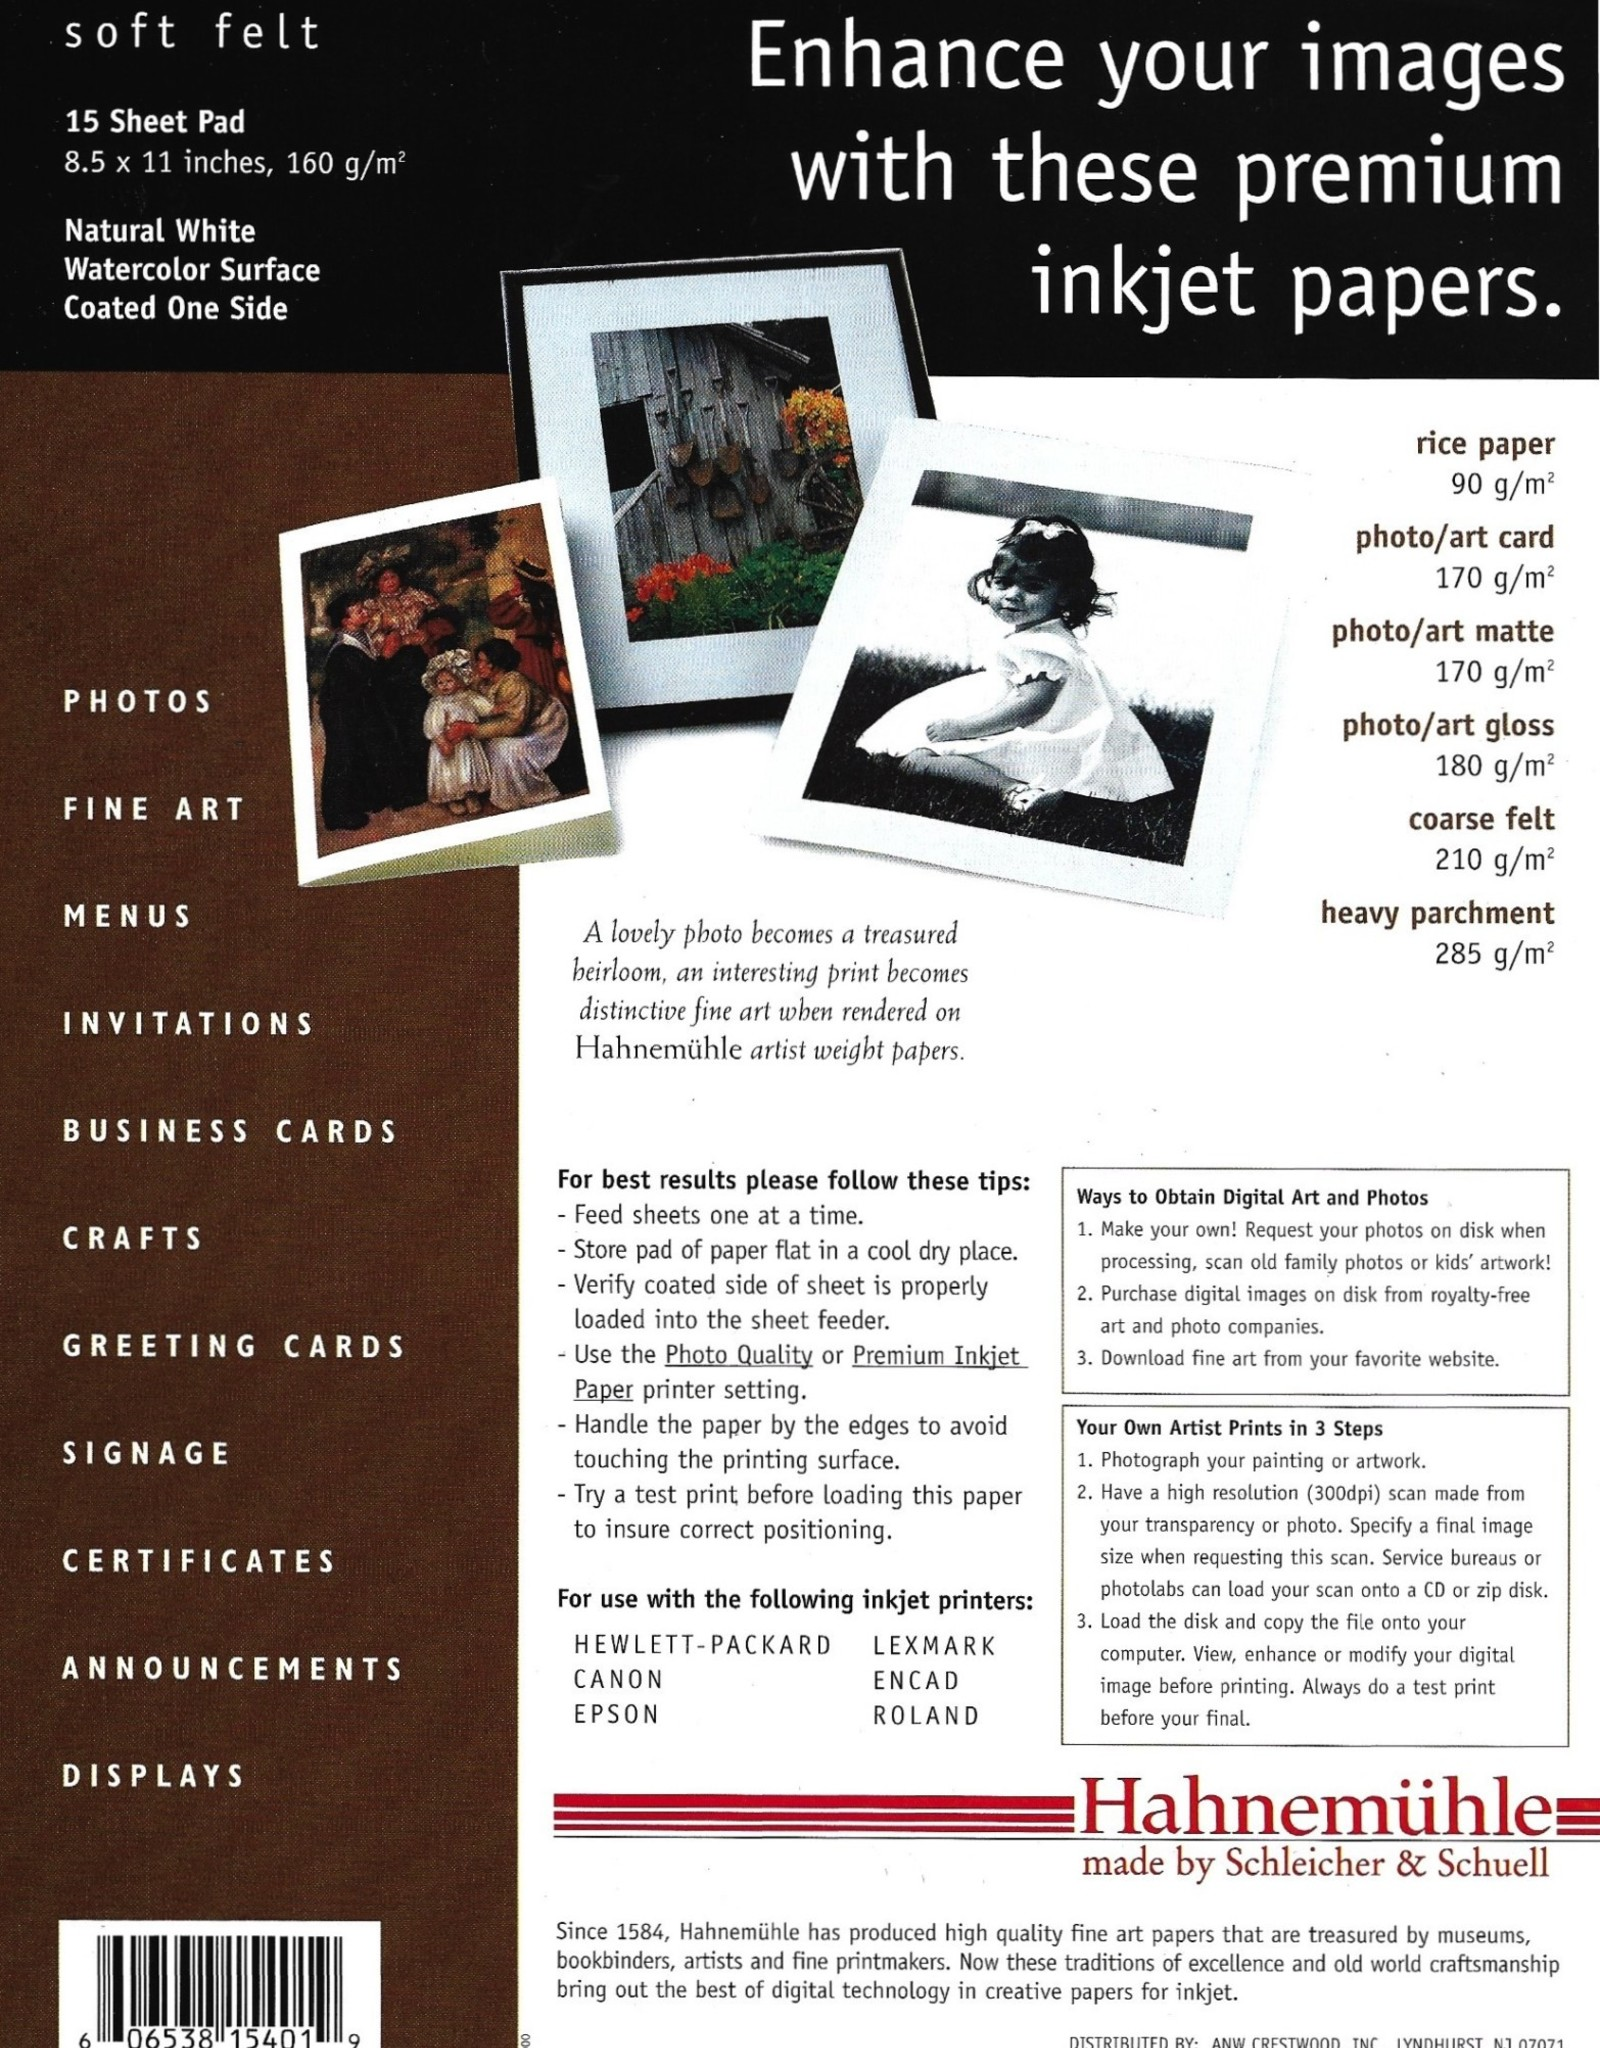 "Hahnemuhle Creative Papers for Inkjet, Natural White, Soft Felt, 8.5"" x 11"", 160 gsm, 15 Sheet Pad"